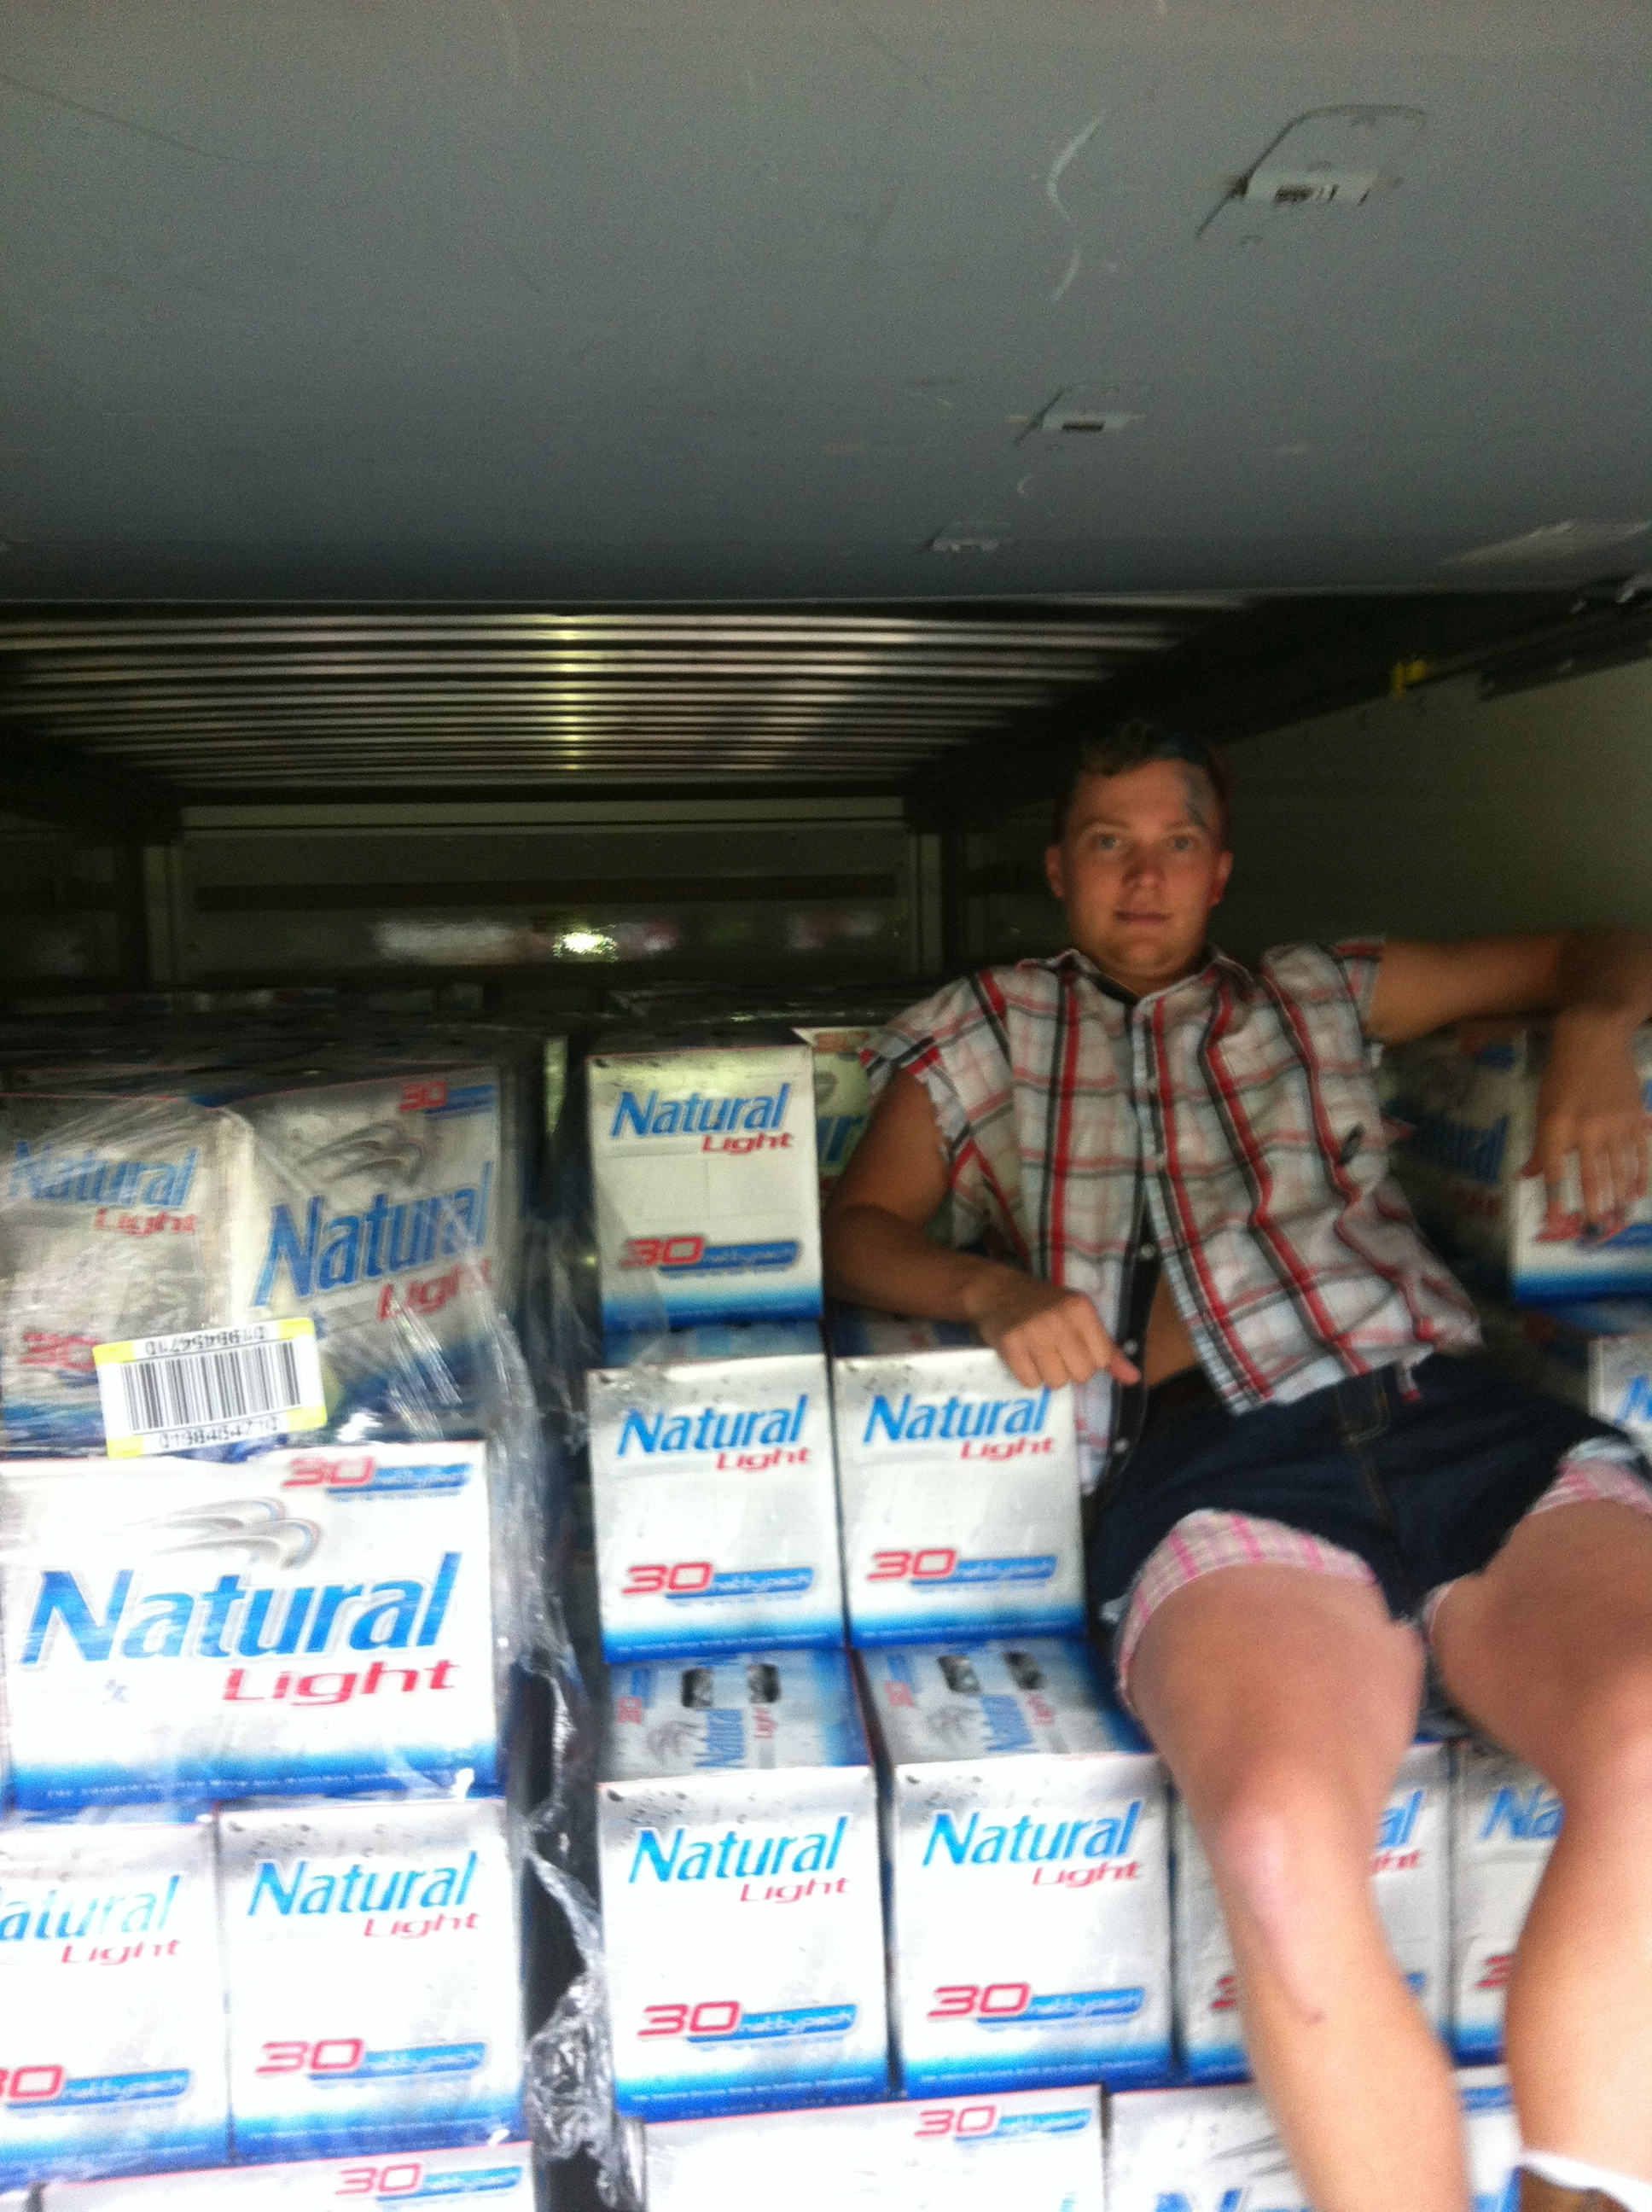 12,960 Natty Lights...the perfect throne at Ivy League 2012. TFM.